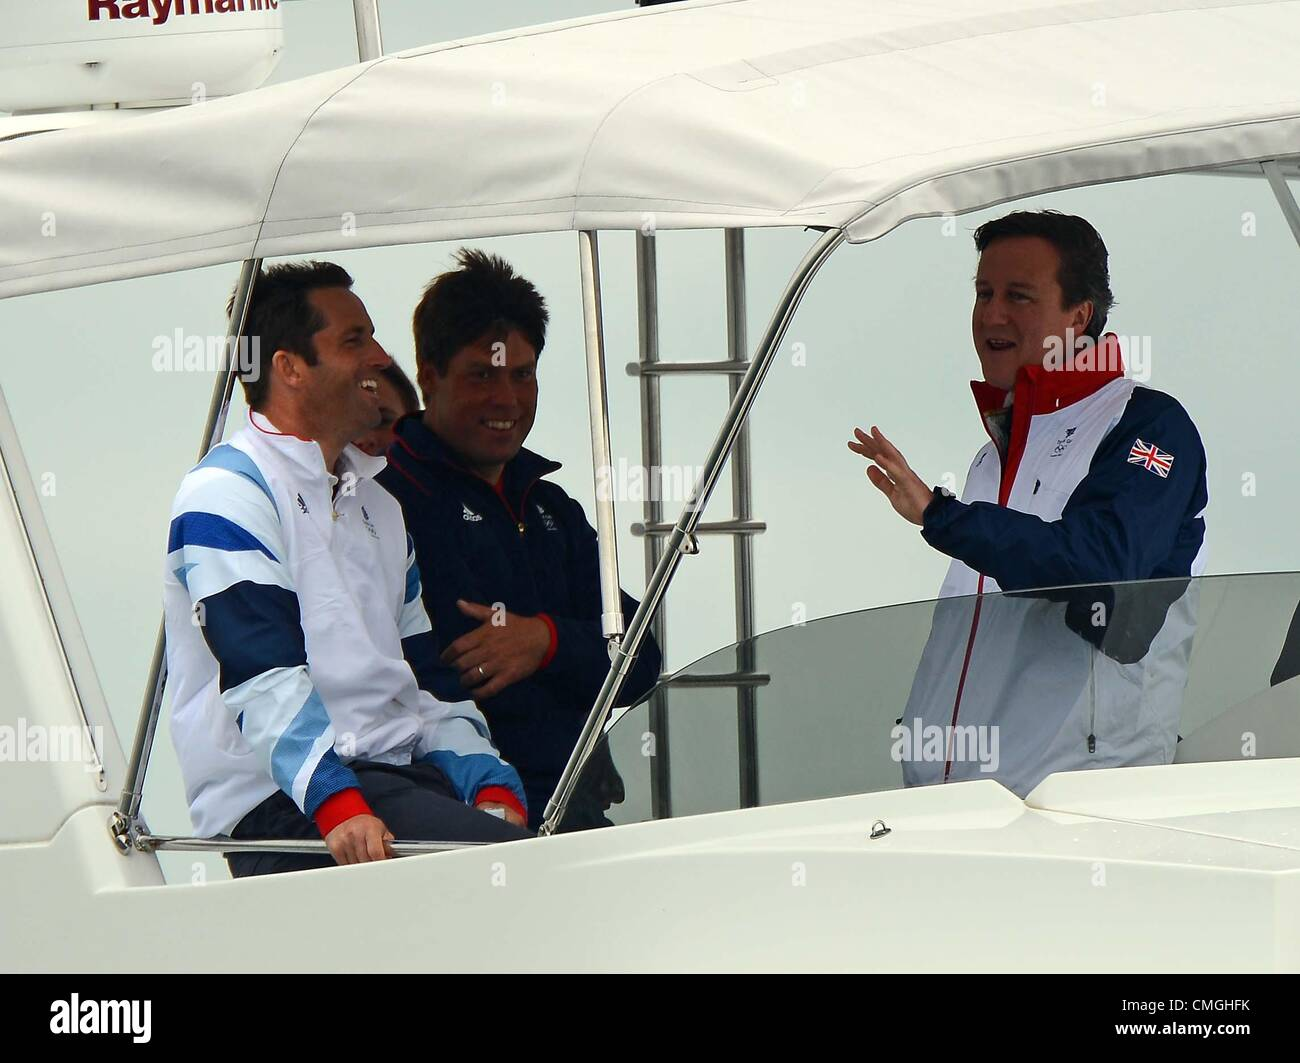 7th Aug 2012. Olympic Sailing, Prime Minister David Cameron visits London 2012 Olympic Games at the Weymouth & Portland Venue, Dorset, Britain, UK.  Seen here watching the RS:X with Gold medal winner in the Finn class Ben Ainslie August 7th, 2012 PICTURE: DORSET MEDIA SERVICE Stock Photo